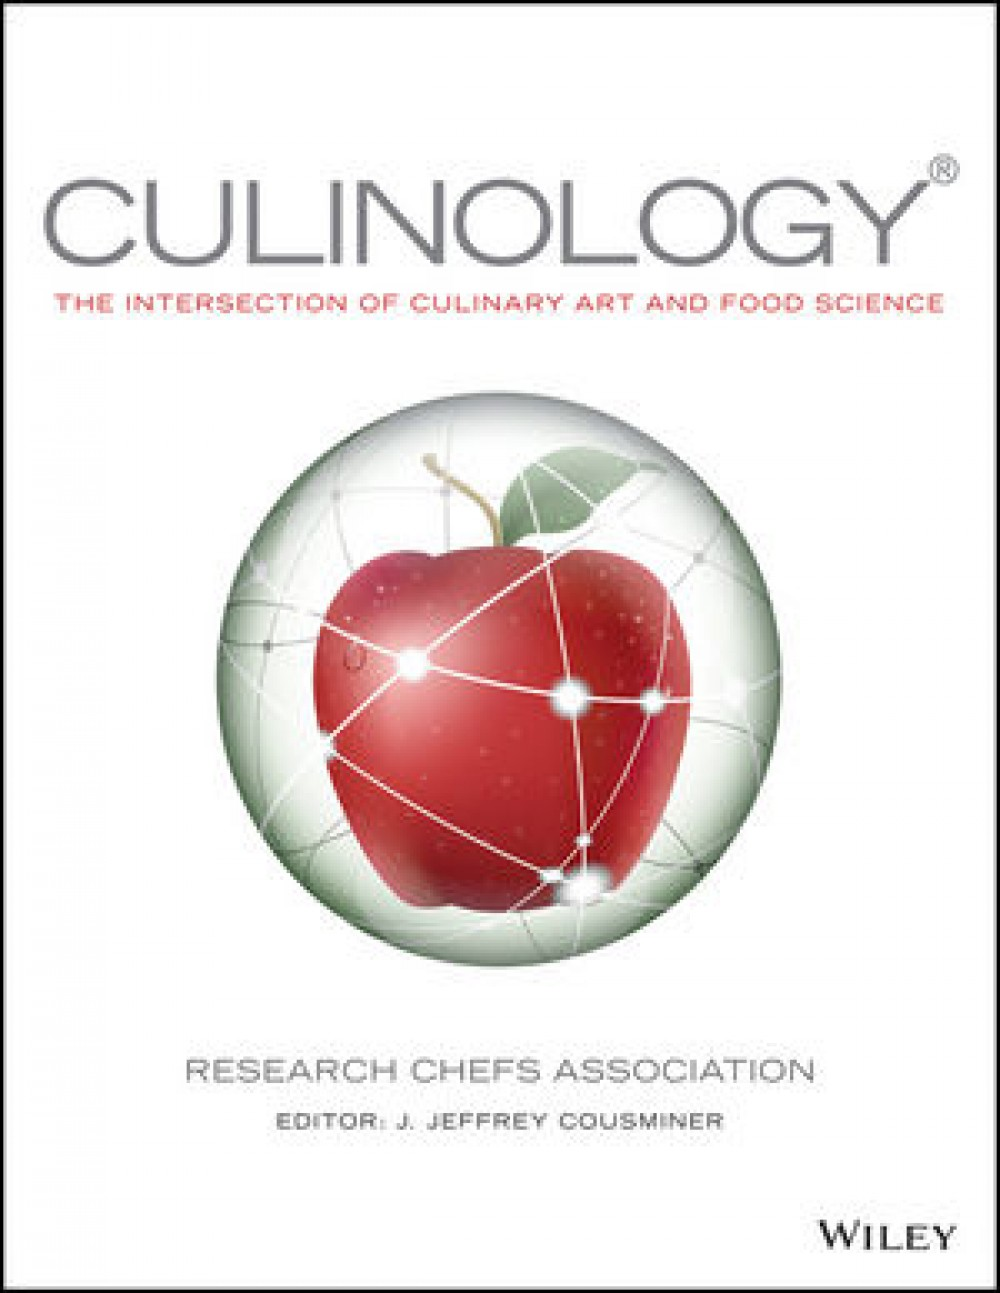 Innovative Text Explores the Fusion of Food and Science